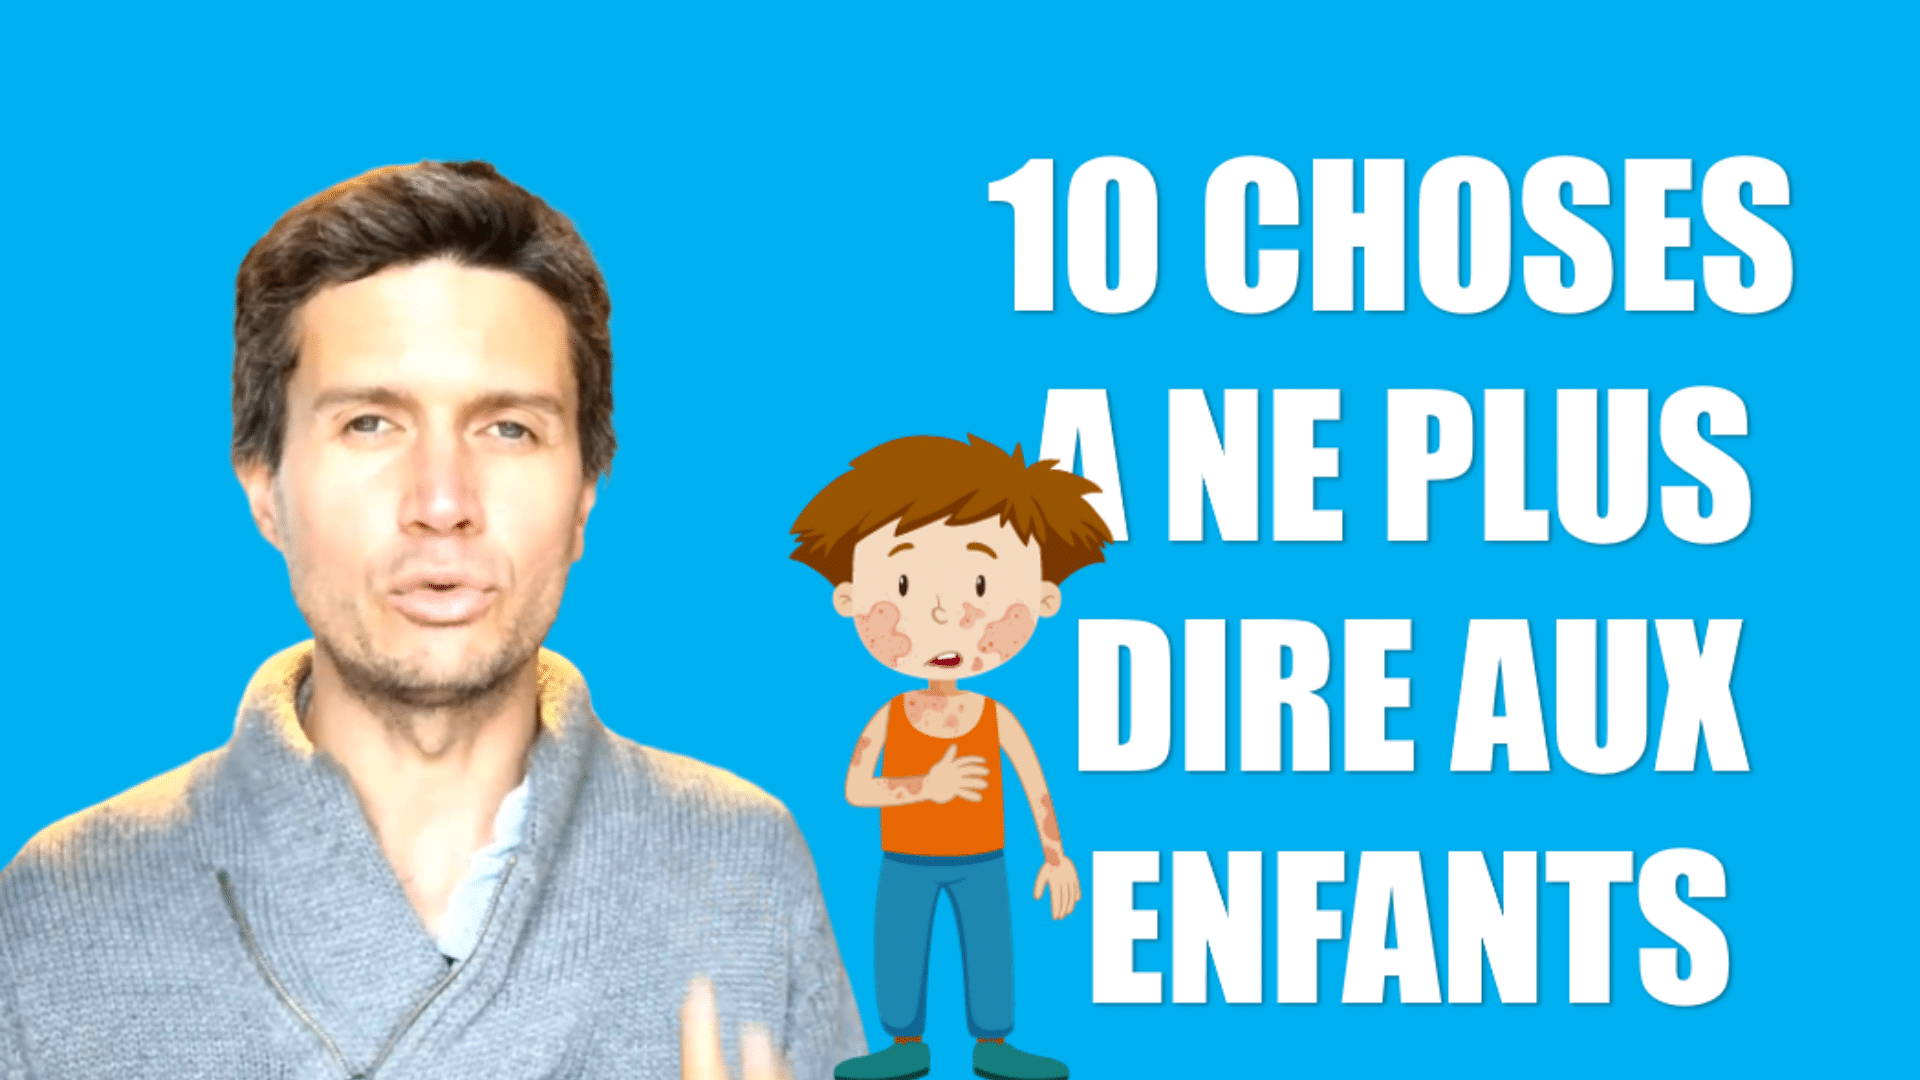 Education positive 10 choses à ne plus dire aux enfants